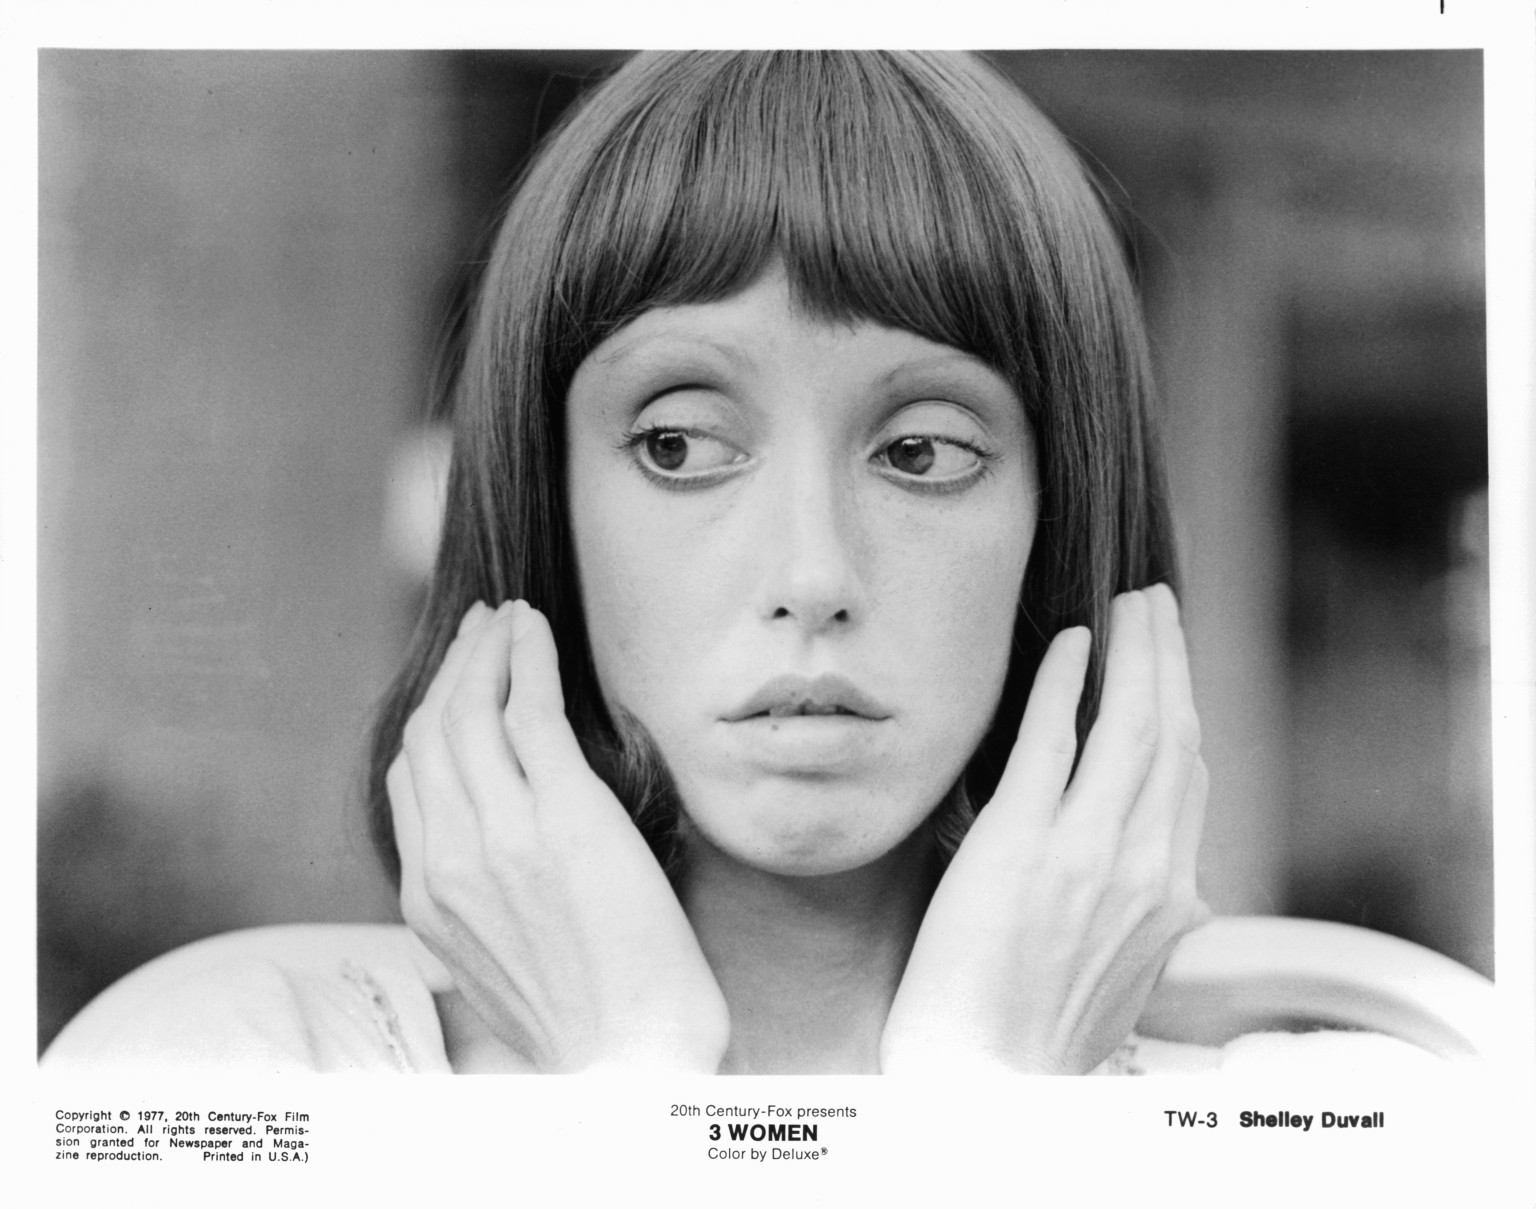 shelley duvall dr philshelley duvall the shining, shelley duvall dr phil, shelley duvall 2015, shelley duvall youtube, shelley duvall family guy, shelley duvall annie hall, shelley duvall psycho, shelley duvall clea duvall, shelley duvall jack nicholson, shelley duvall he needs me, shelley duvall 2016, shelley duvall he large, shelley duvall height, shelley duvall beatles, shelley duvall and robin williams